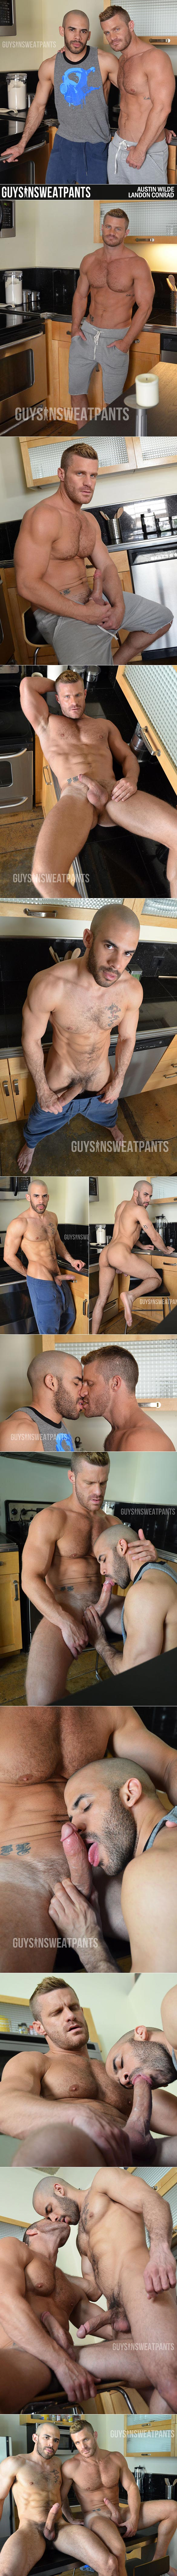 "GuysInSweatpants: Landon Conrad and Austin Wilde fuck each other in ""Do you want a blow job?"""